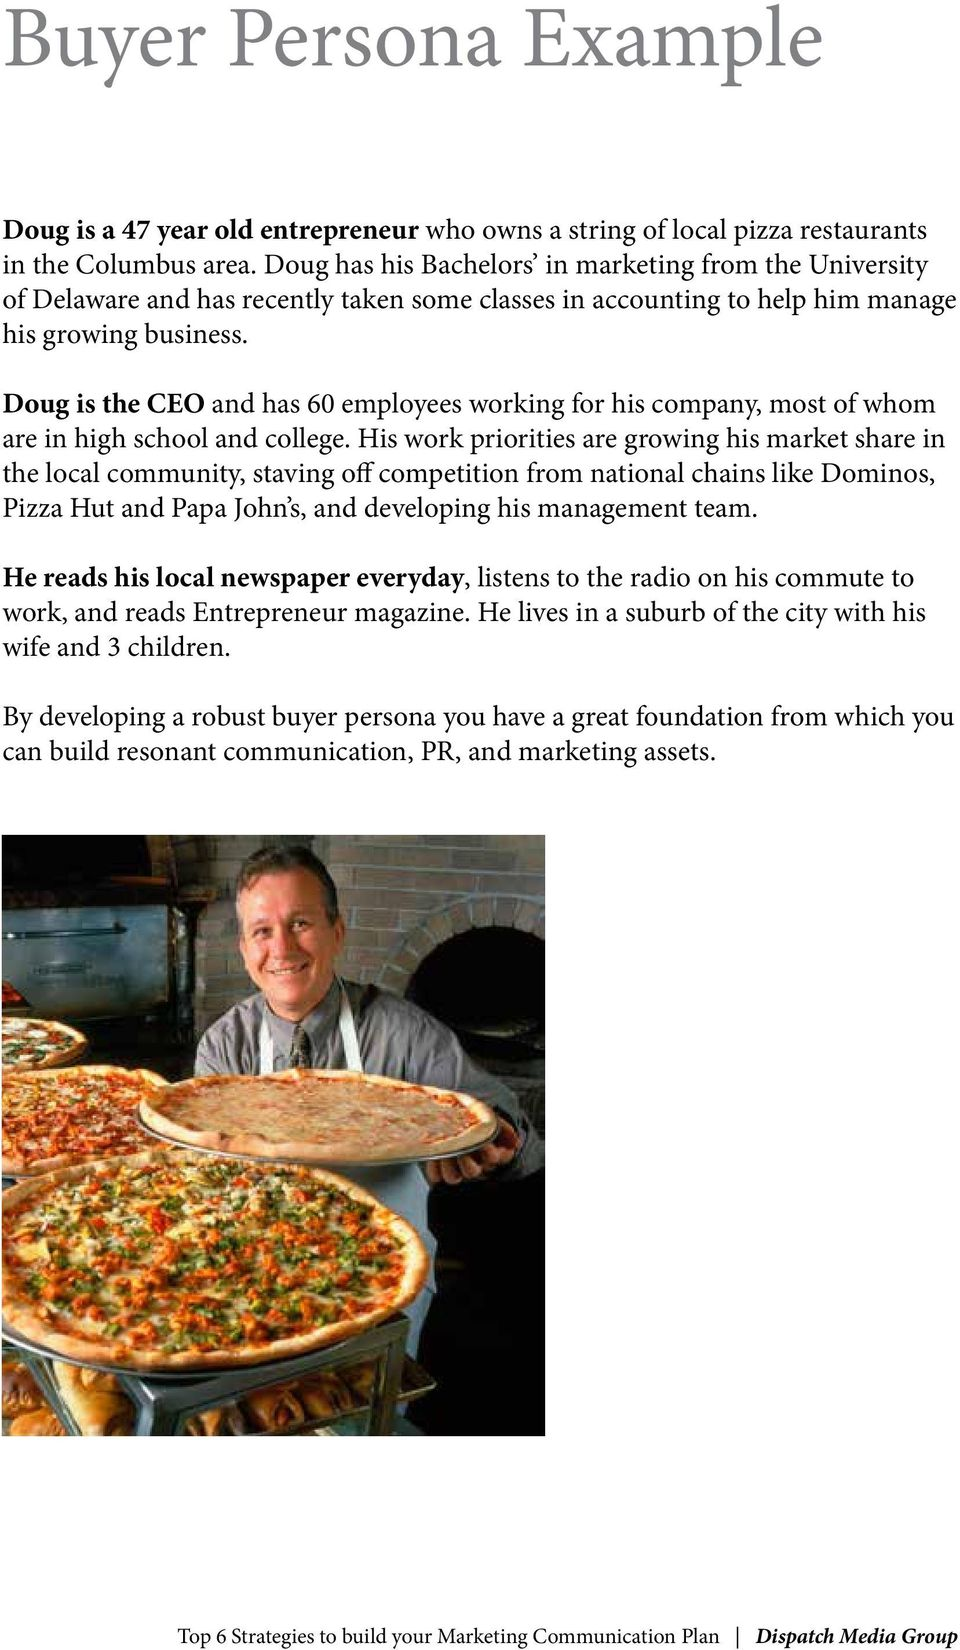 Doug is the CEO and has 60 employees working for his company, most of whom are in high school and college.